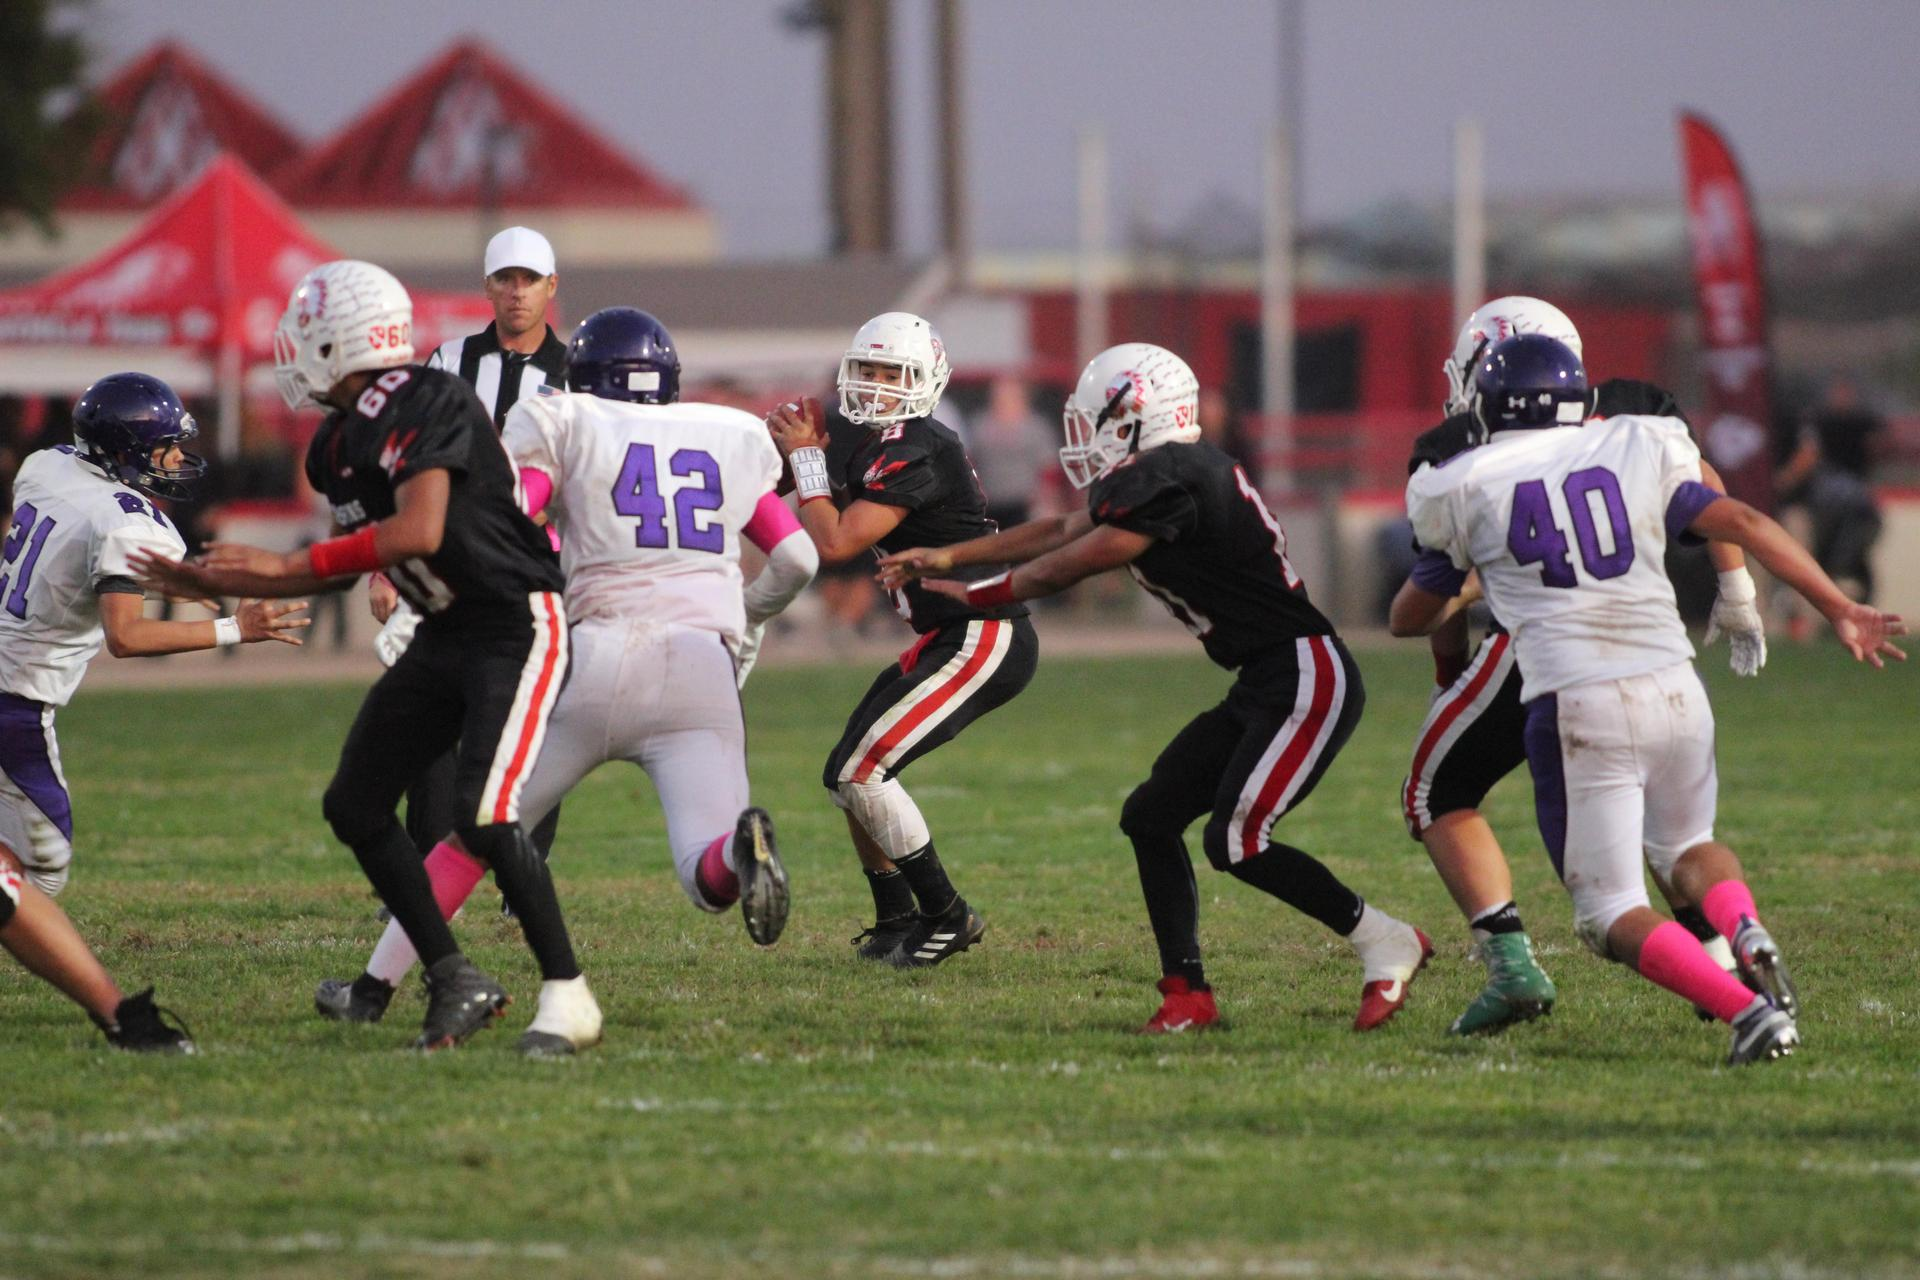 Junior varsity playing football against Washington union